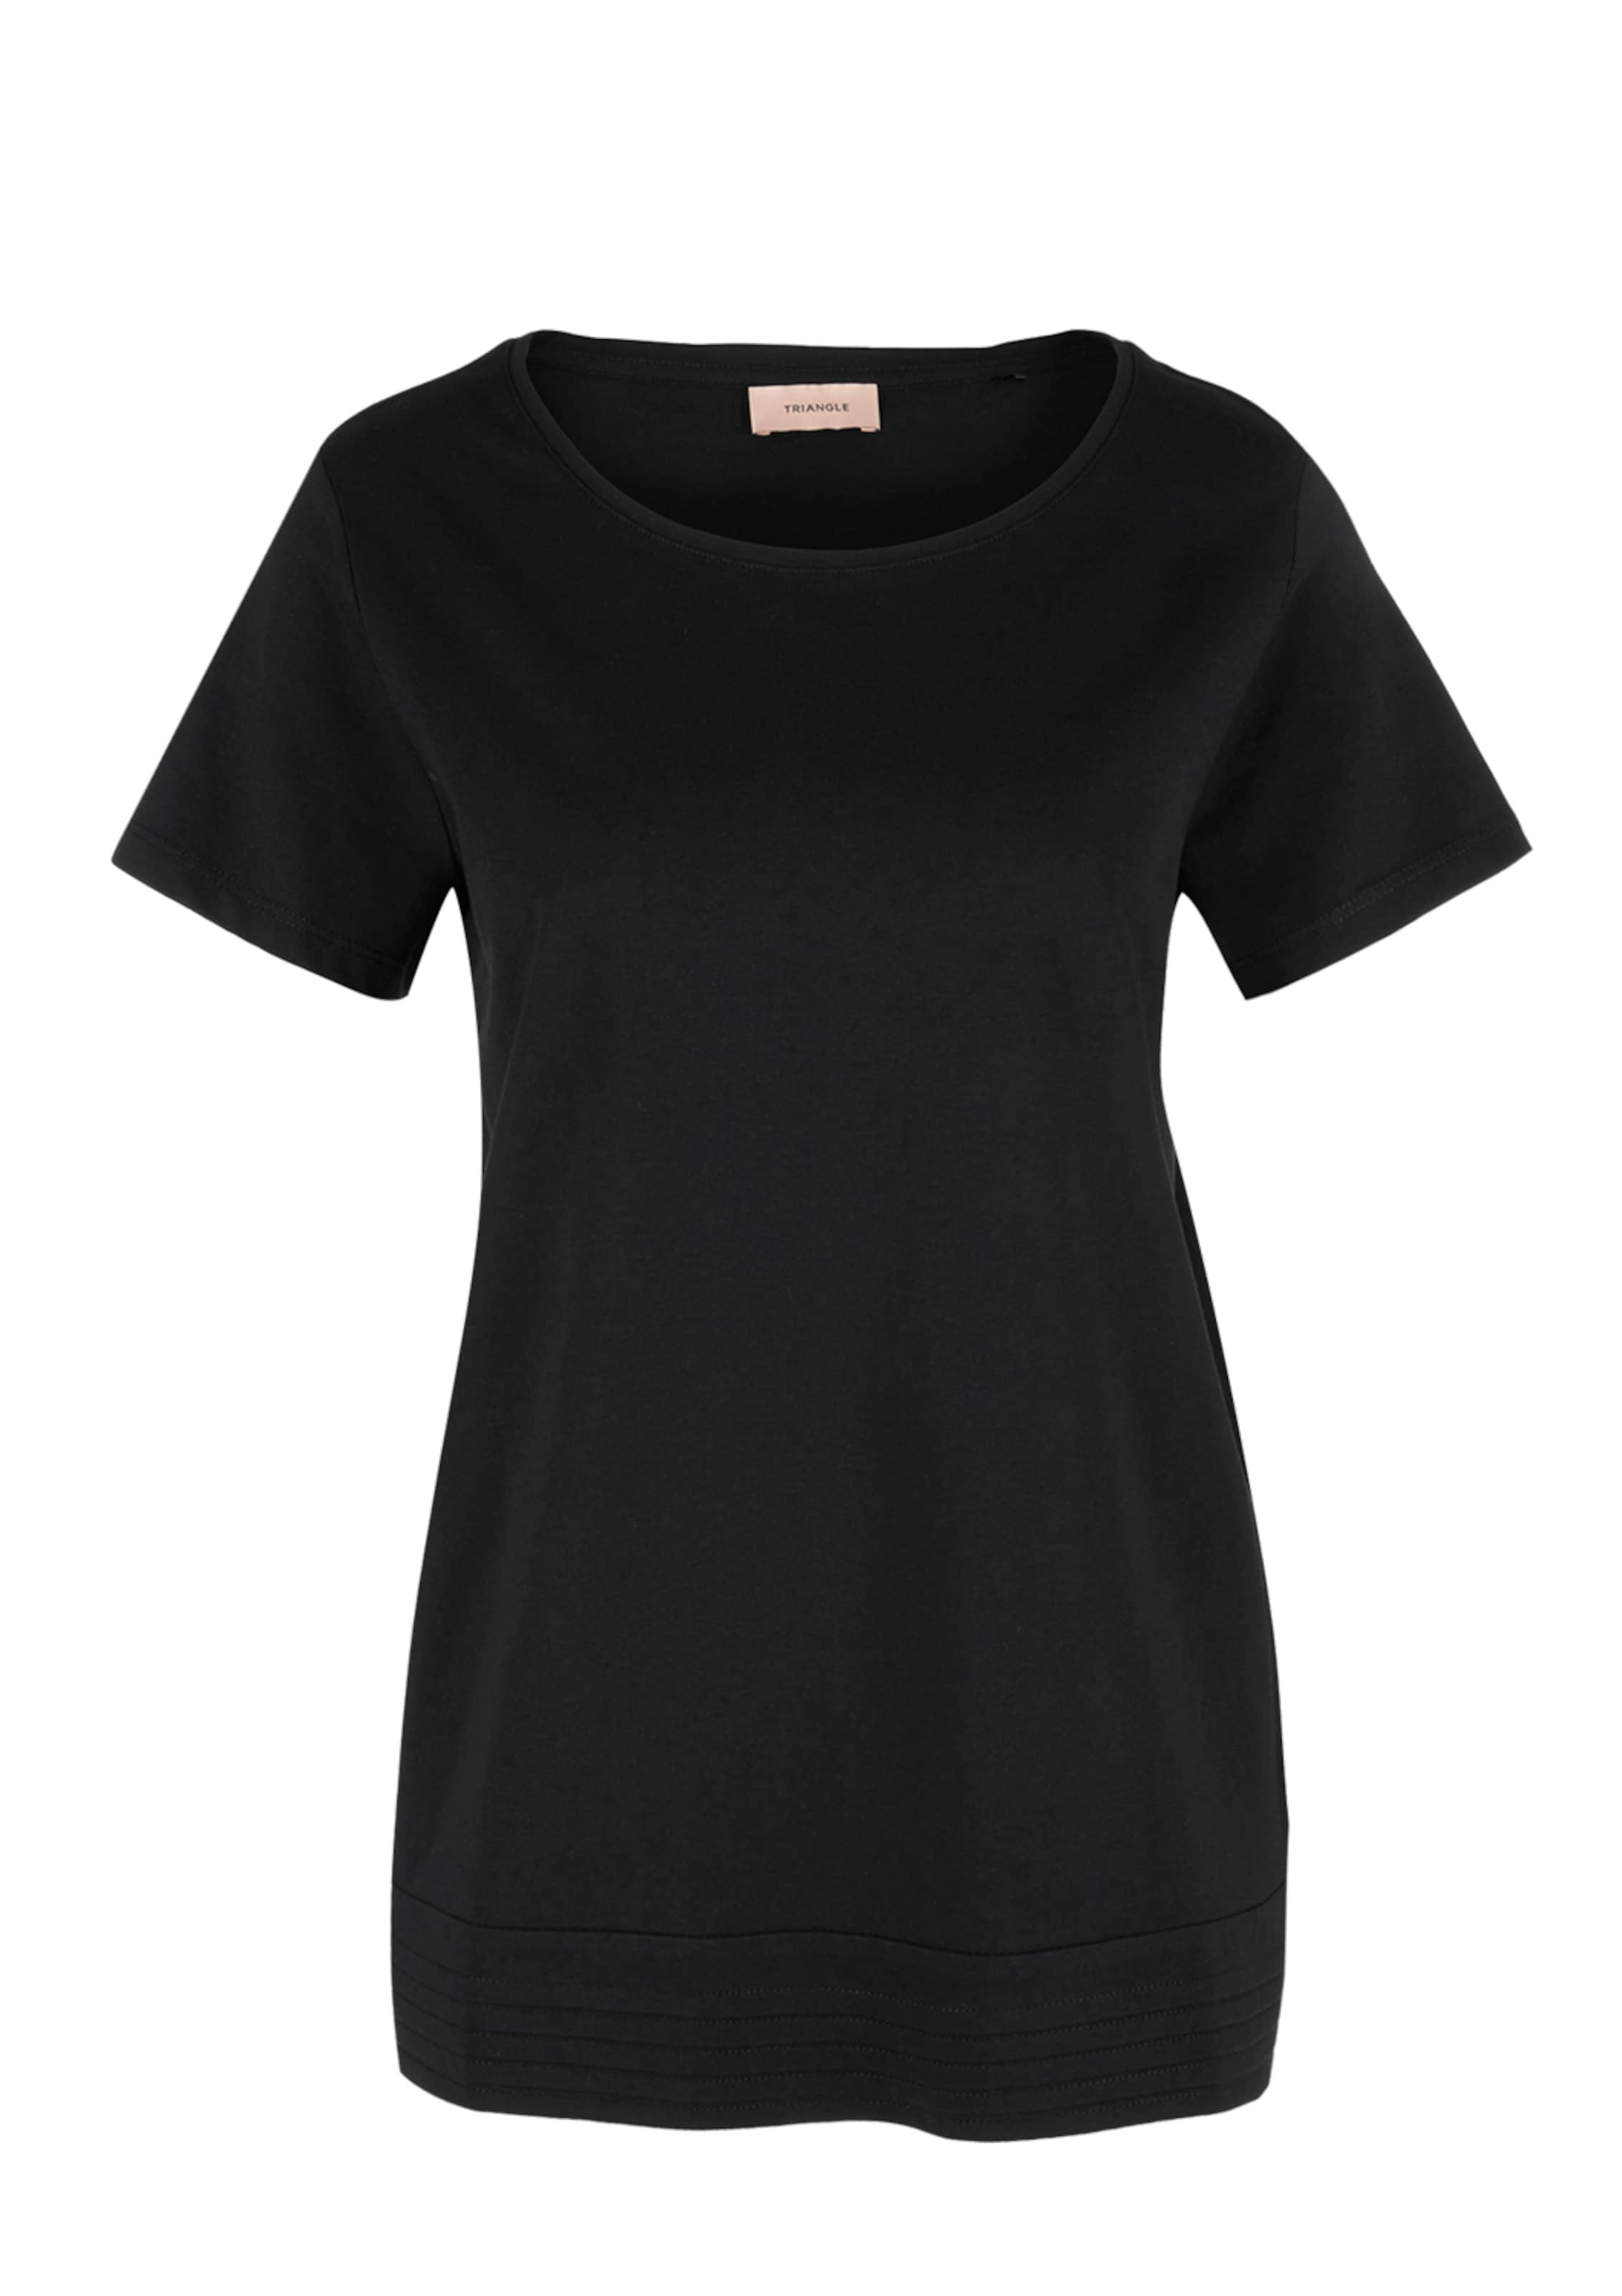 Triangle Jerseyshirt Jerseyshirt Triangle In Schwarz In f7Y6Igybv